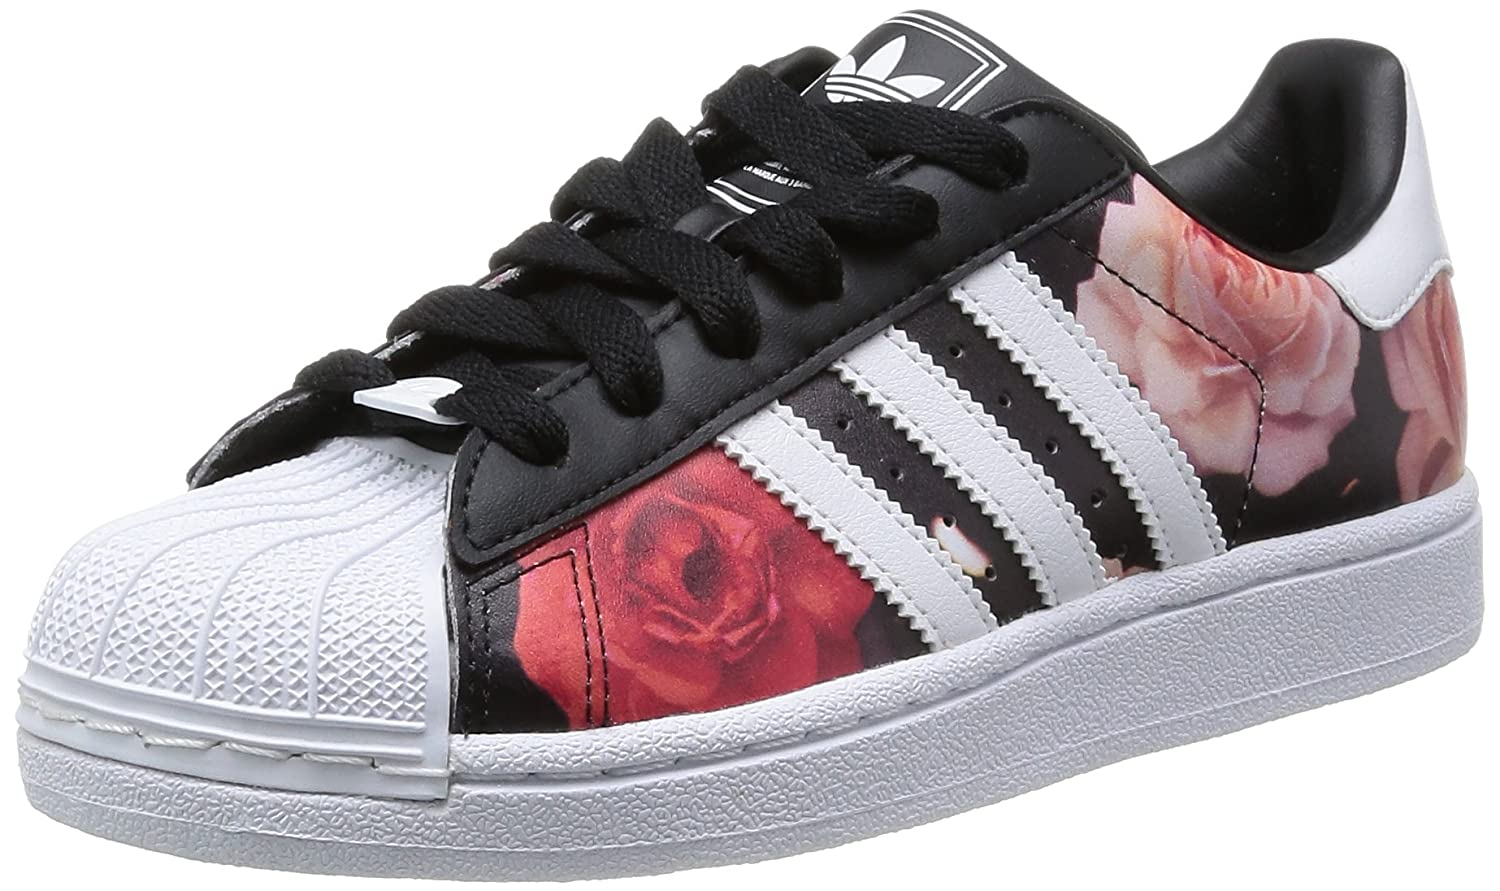 Adidas Originals Superstar II Womens Trainers Rose Red Black Sizes 3.5 To 7  New (UK 7 (EUR 40 2 3))  Amazon.co.uk  Shoes   Bags 5525485e7